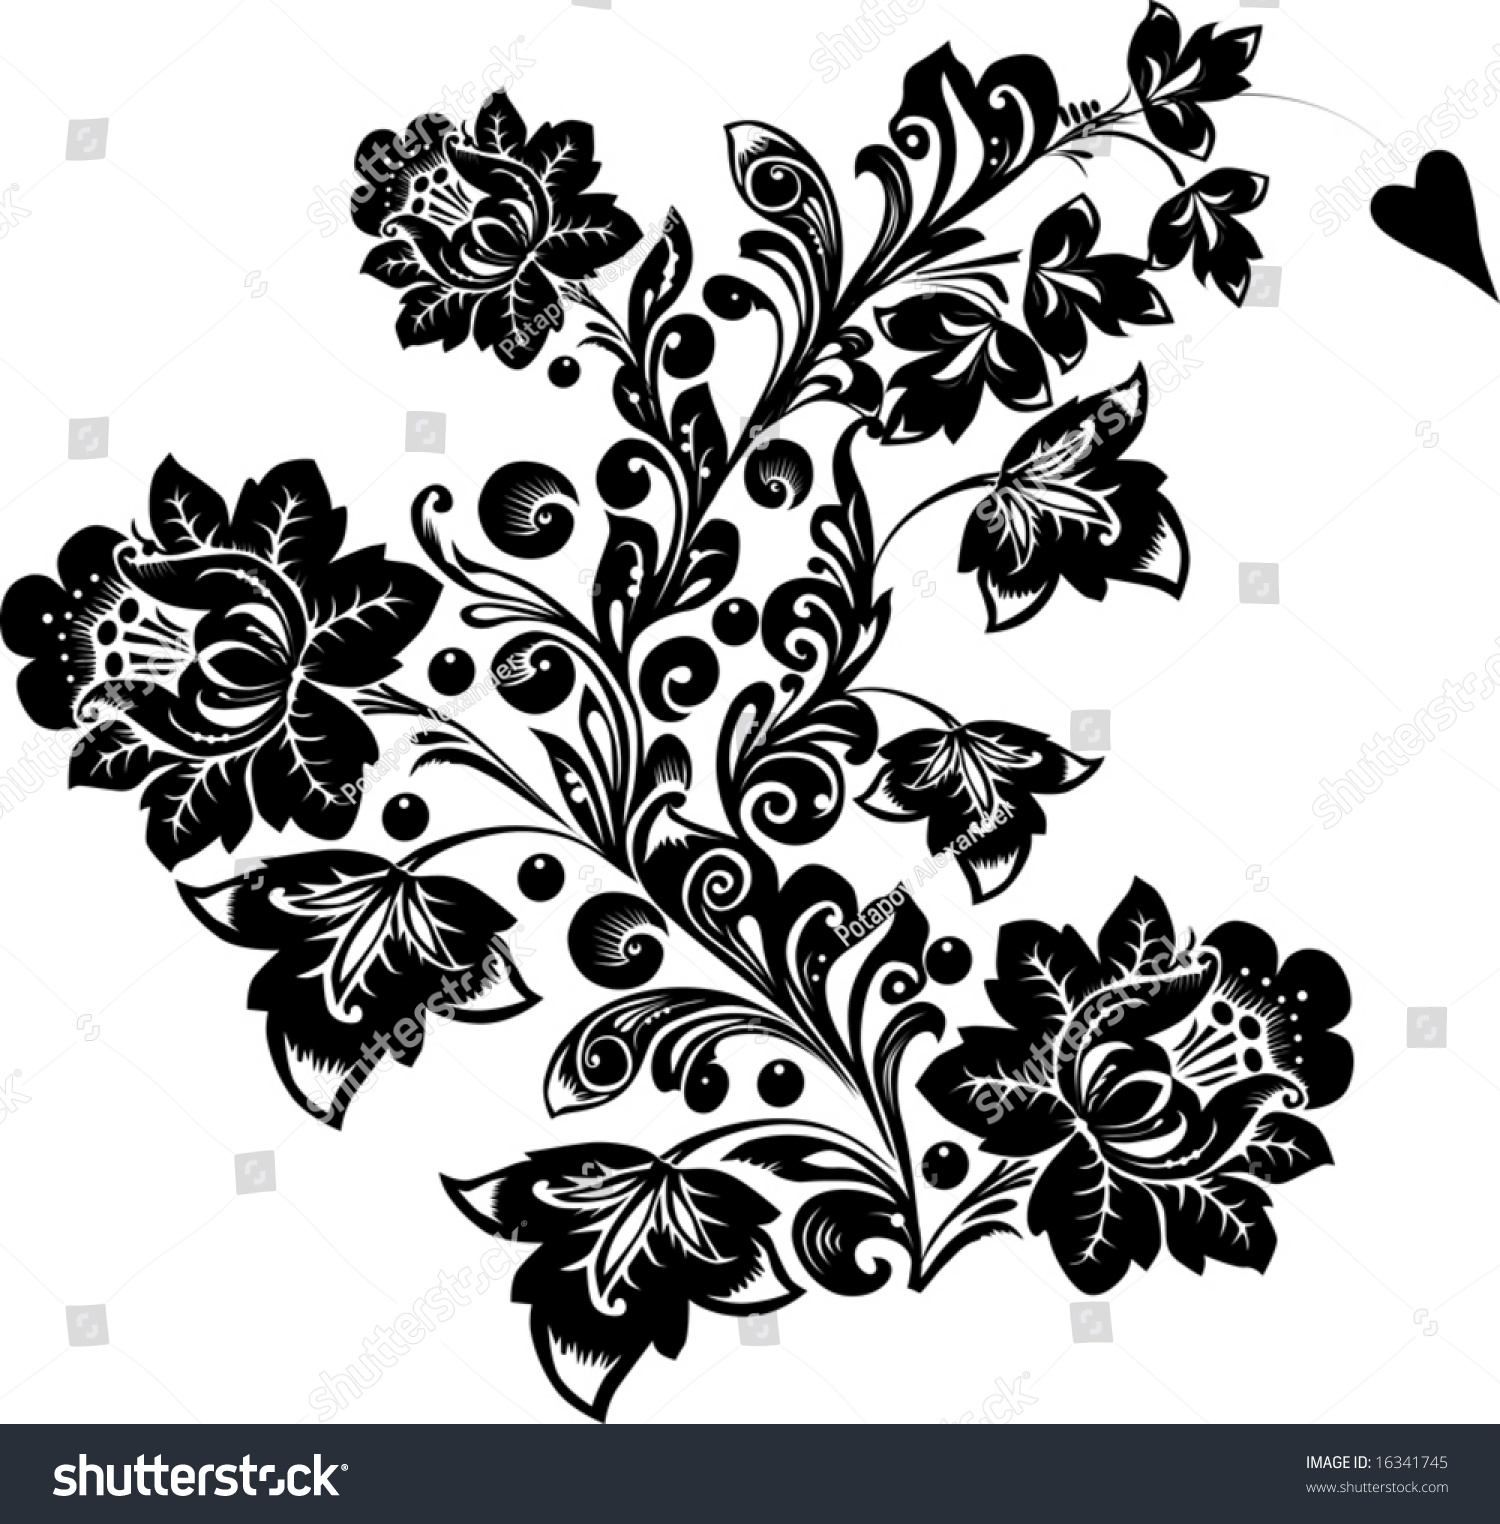 Illustration Black Flower On White Background Stock Vector Royalty